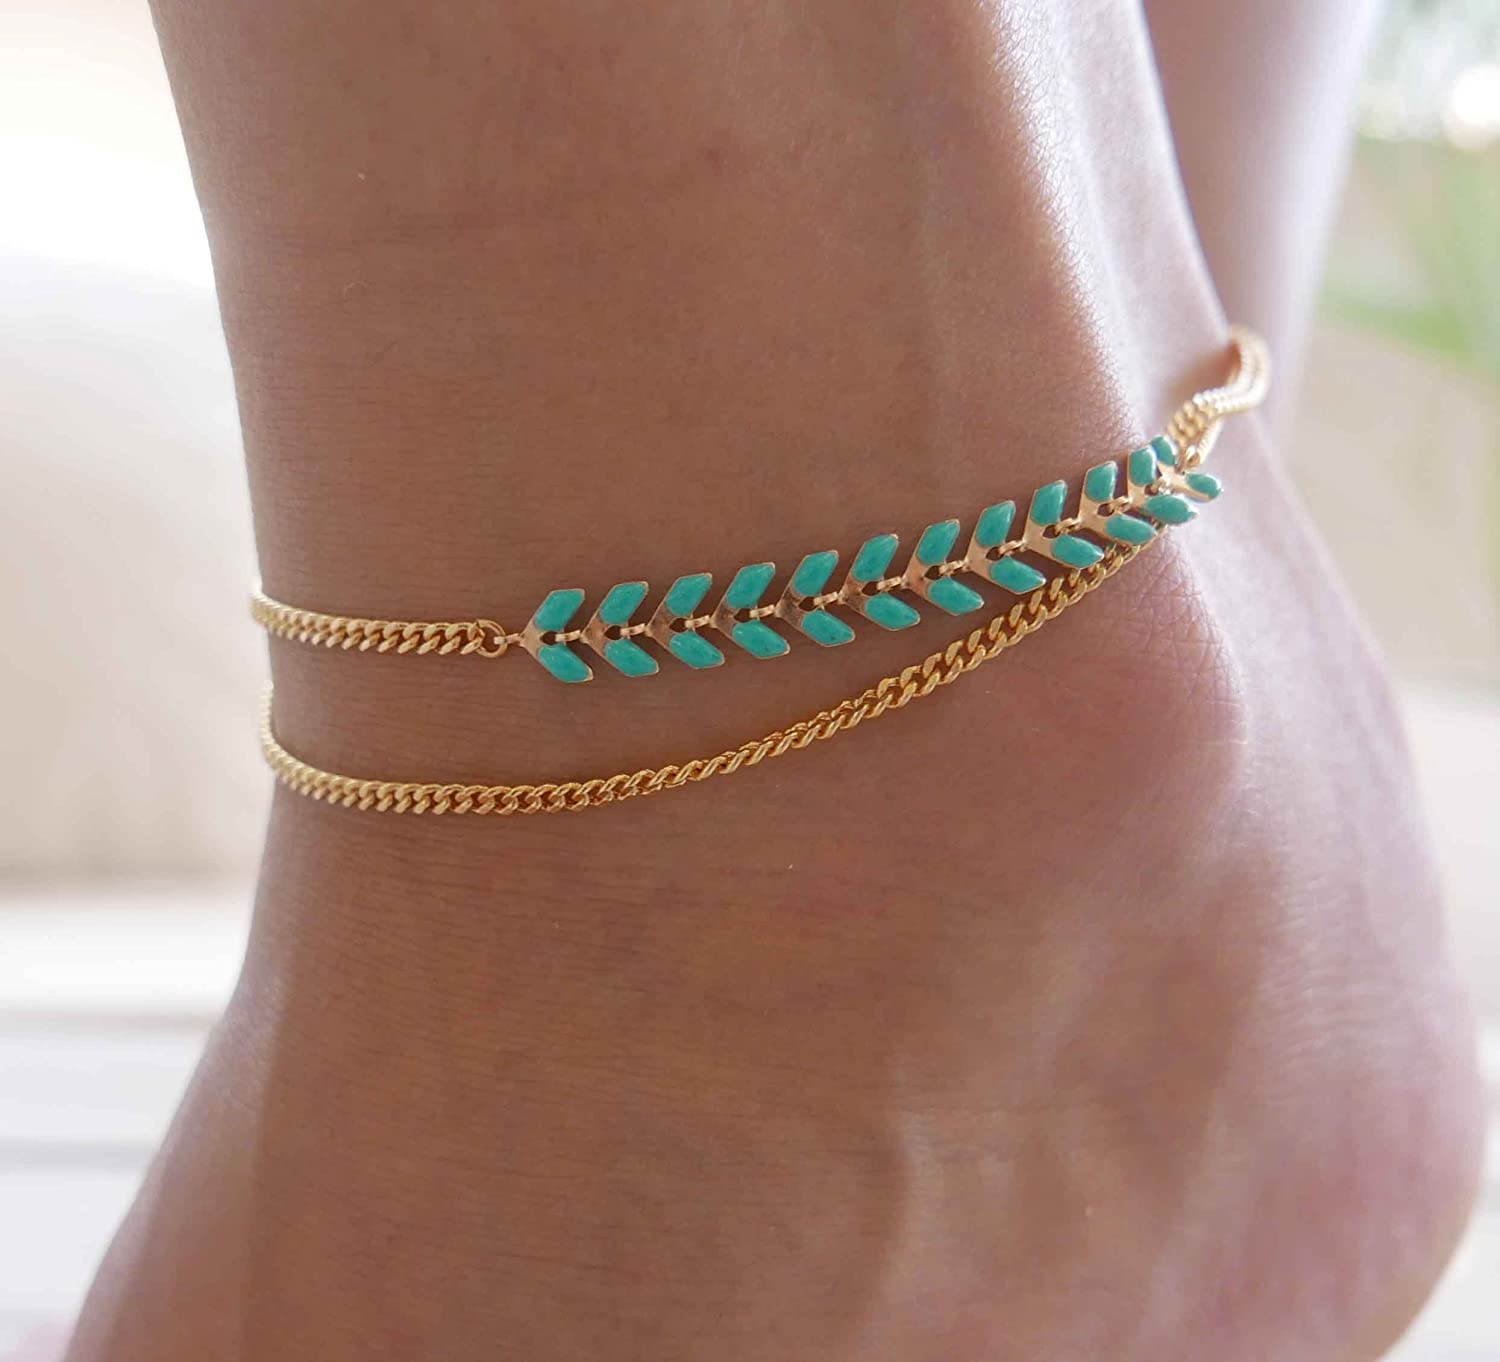 Handmade Gold Anklet For Women Set With Turquoise Arrow Chain By Galis Jewelry - Gold Ankle Bracelet For Women - Arrow Anklet - Arrow Ankle Bracelet